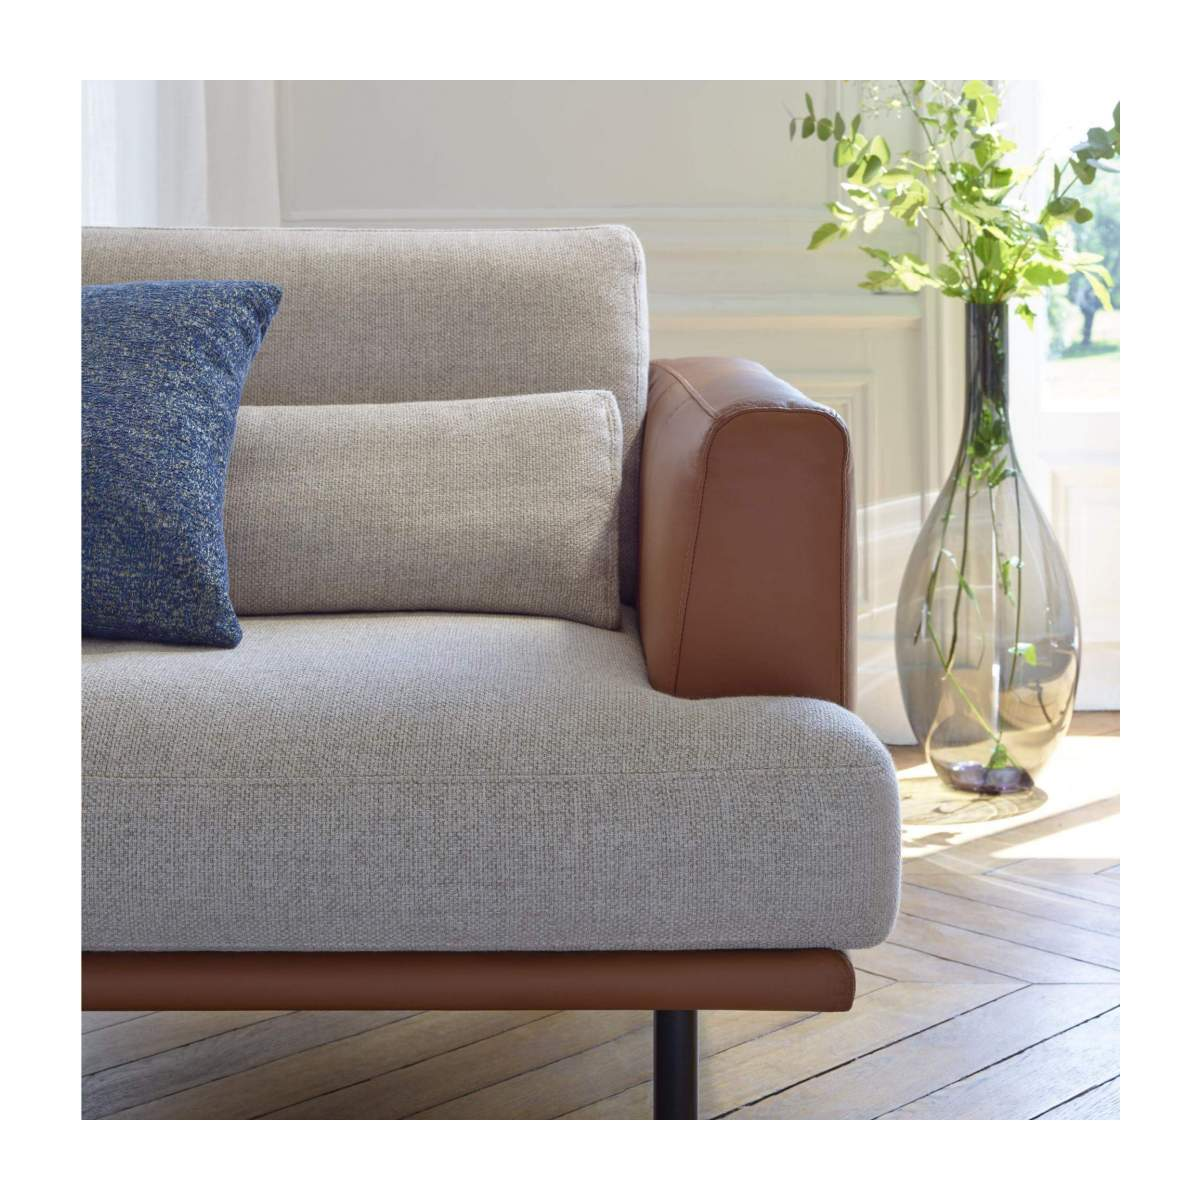 2 seater sofa in Super Velvet fabric, petrol blue with base in brown leather n°3